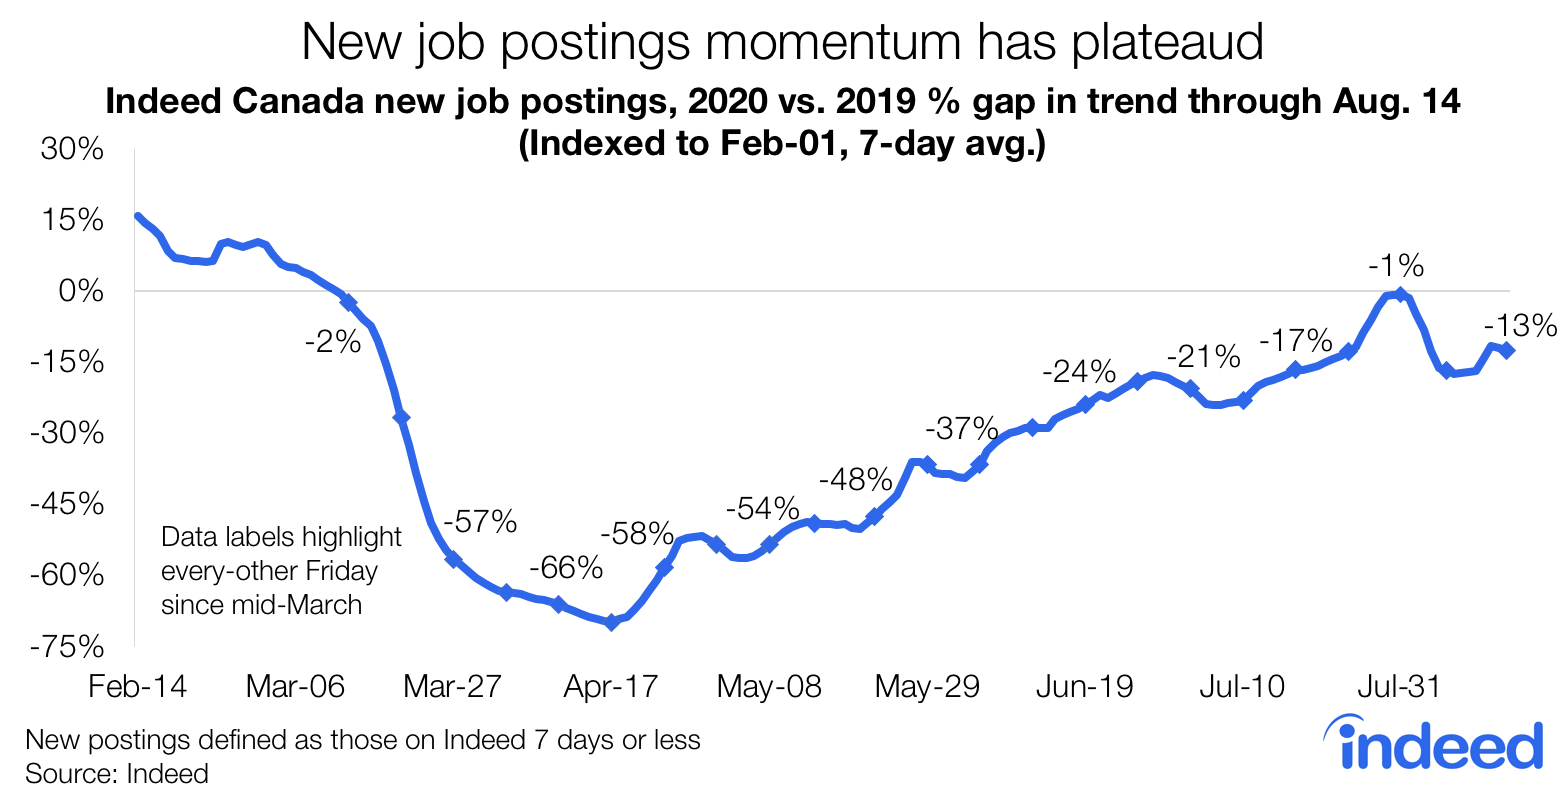 Line graph shows New job postings momentum has plateaued.